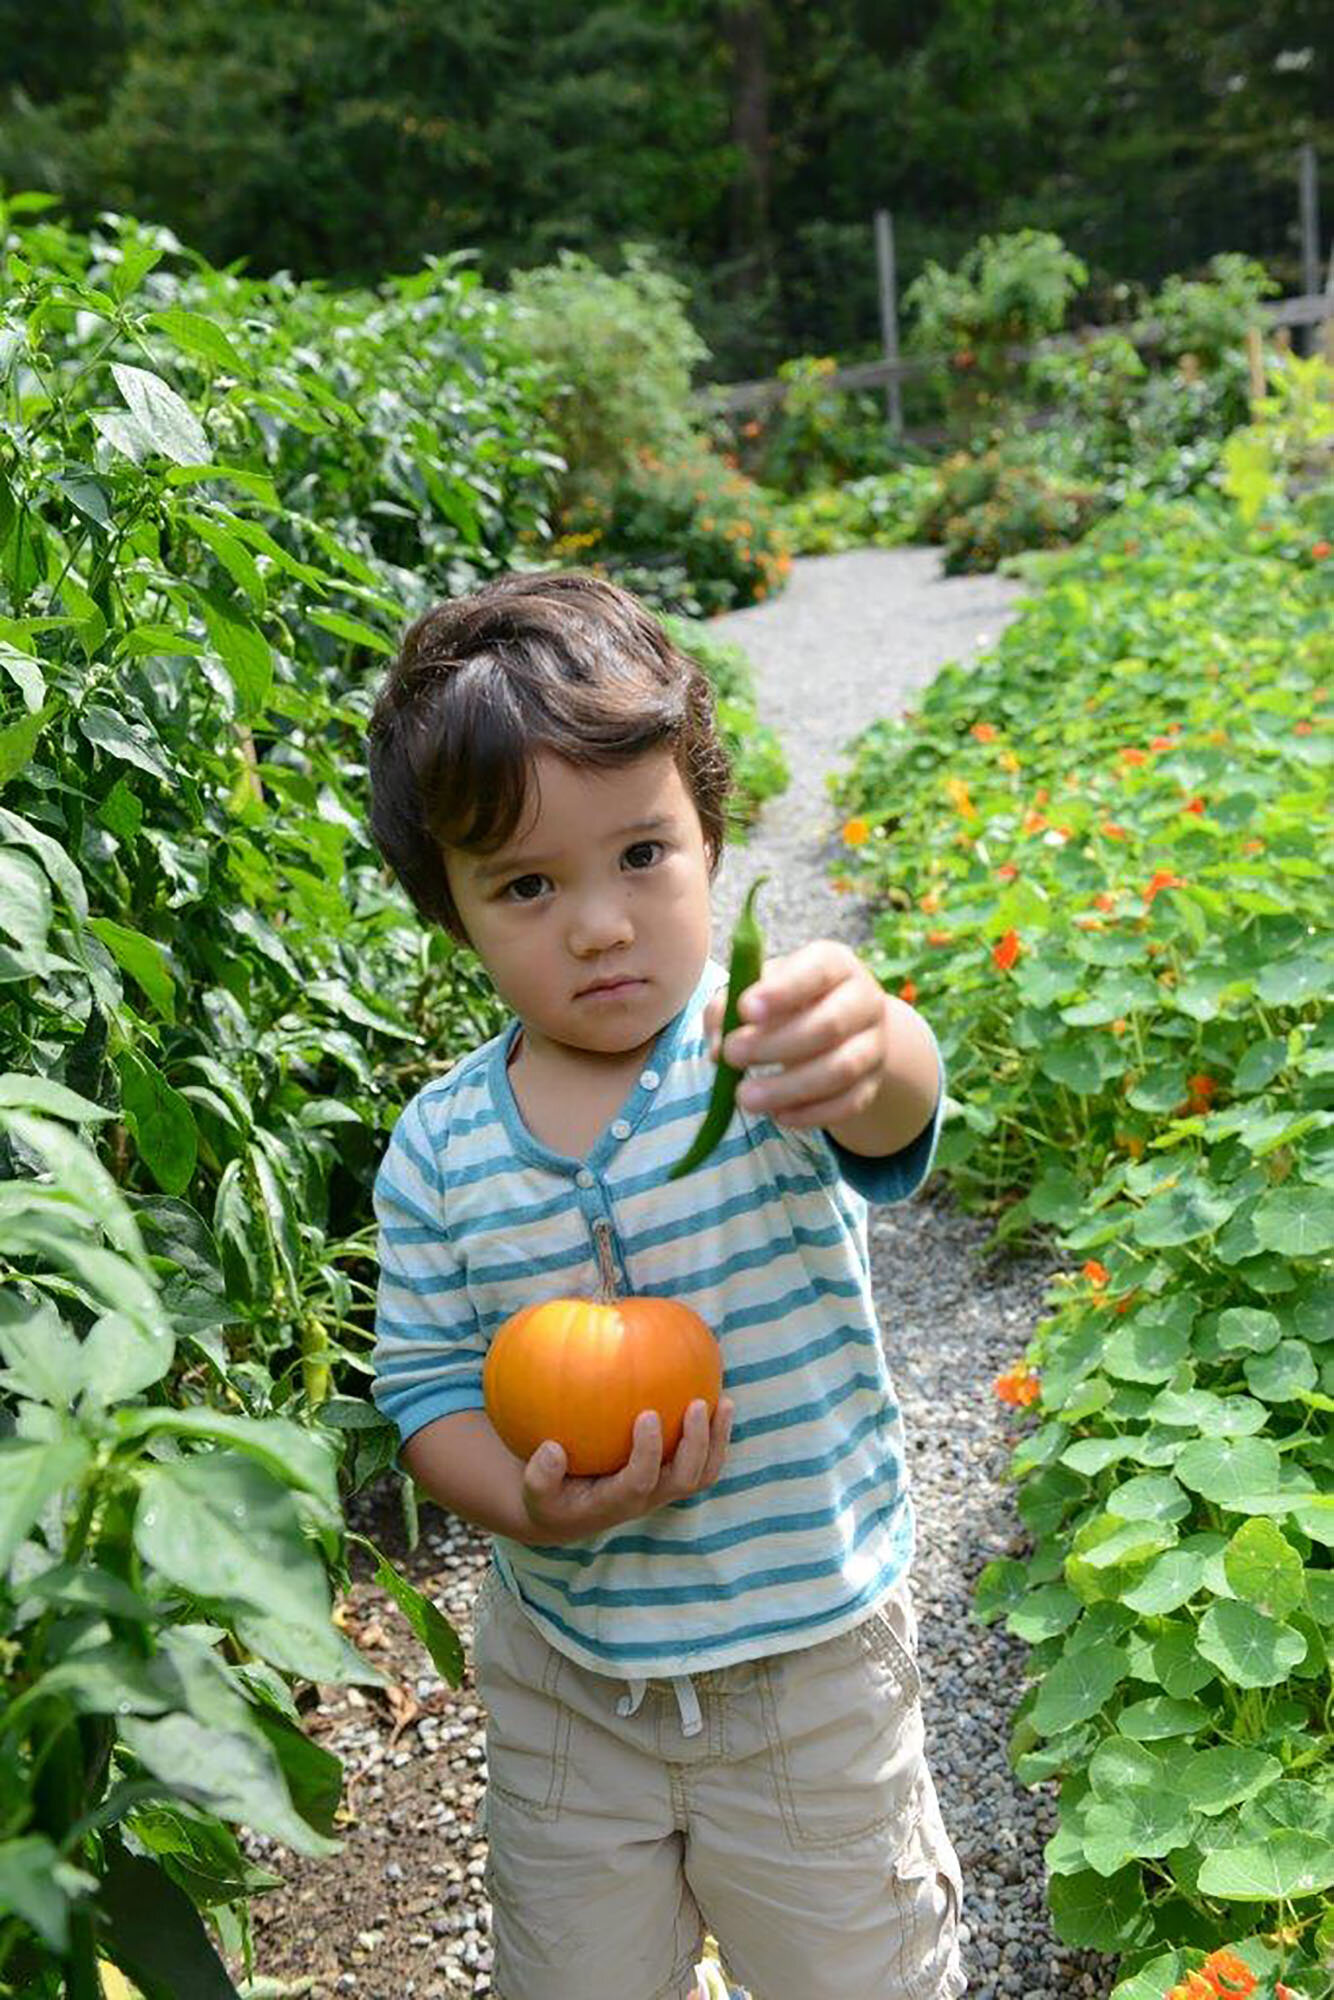 Towa Stevens already got his pumpkin (and a pepper, too) from the Edible Garden. Get yours during Tyler's Pumpkin Days on October 12 and 13. Photo by Tracy Clark.